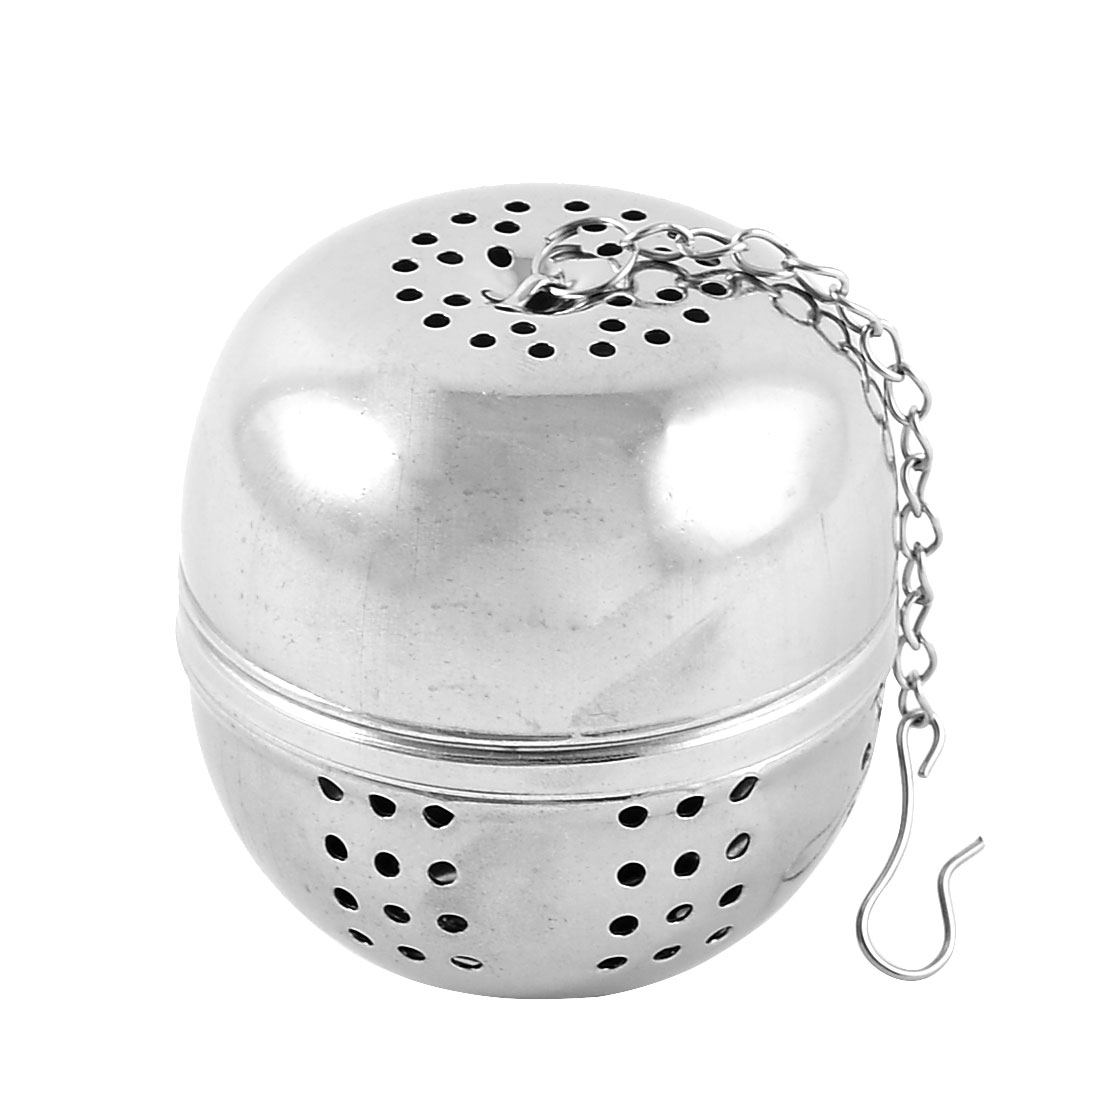 "Kitchen Tea Strainer Infuser Ball 2.2"" Dia w Chain"